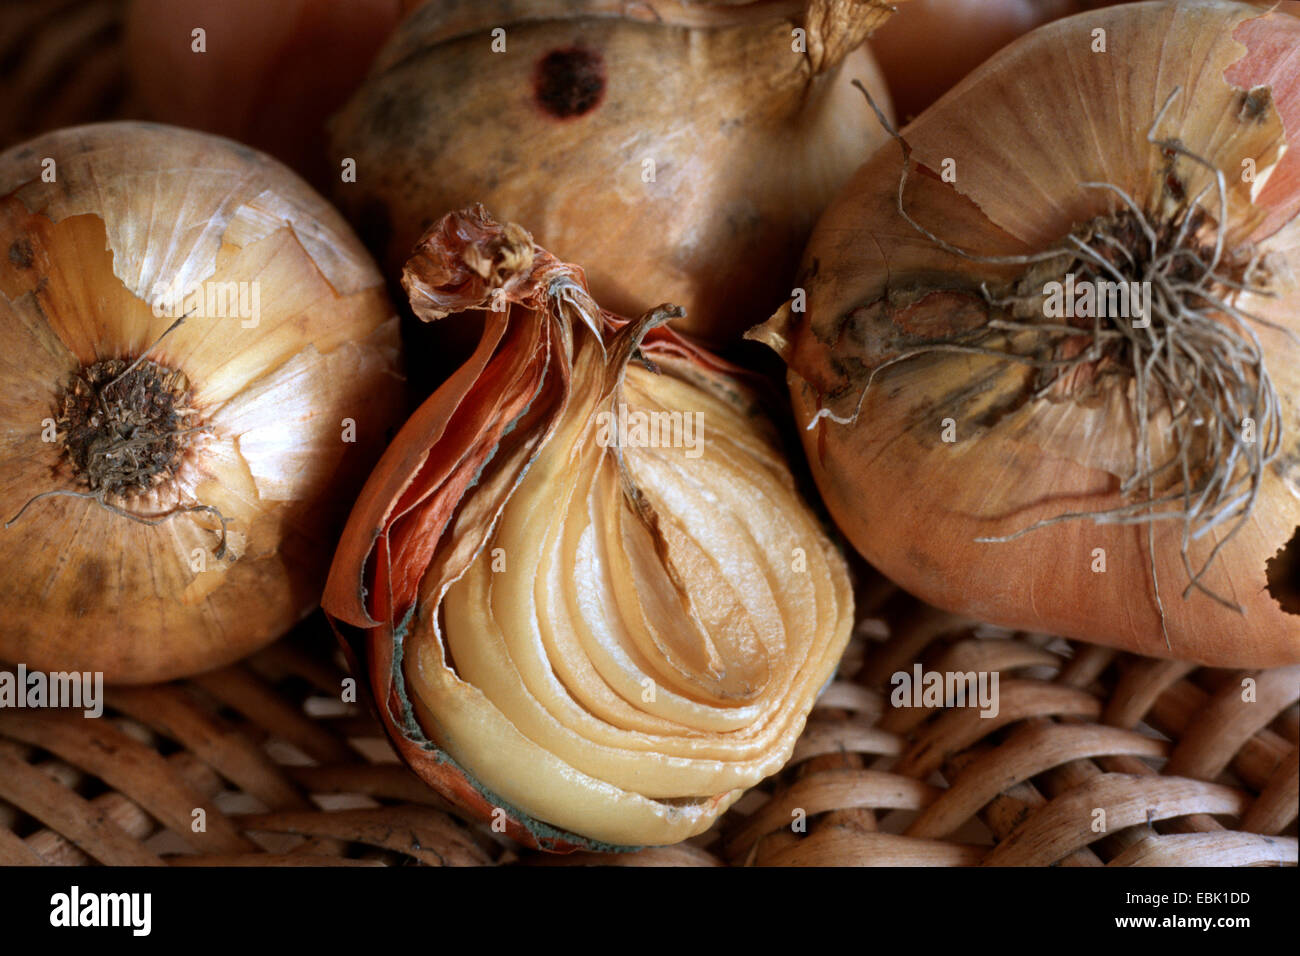 Botrytis allii (Botrytis allii), at onion - Stock Image